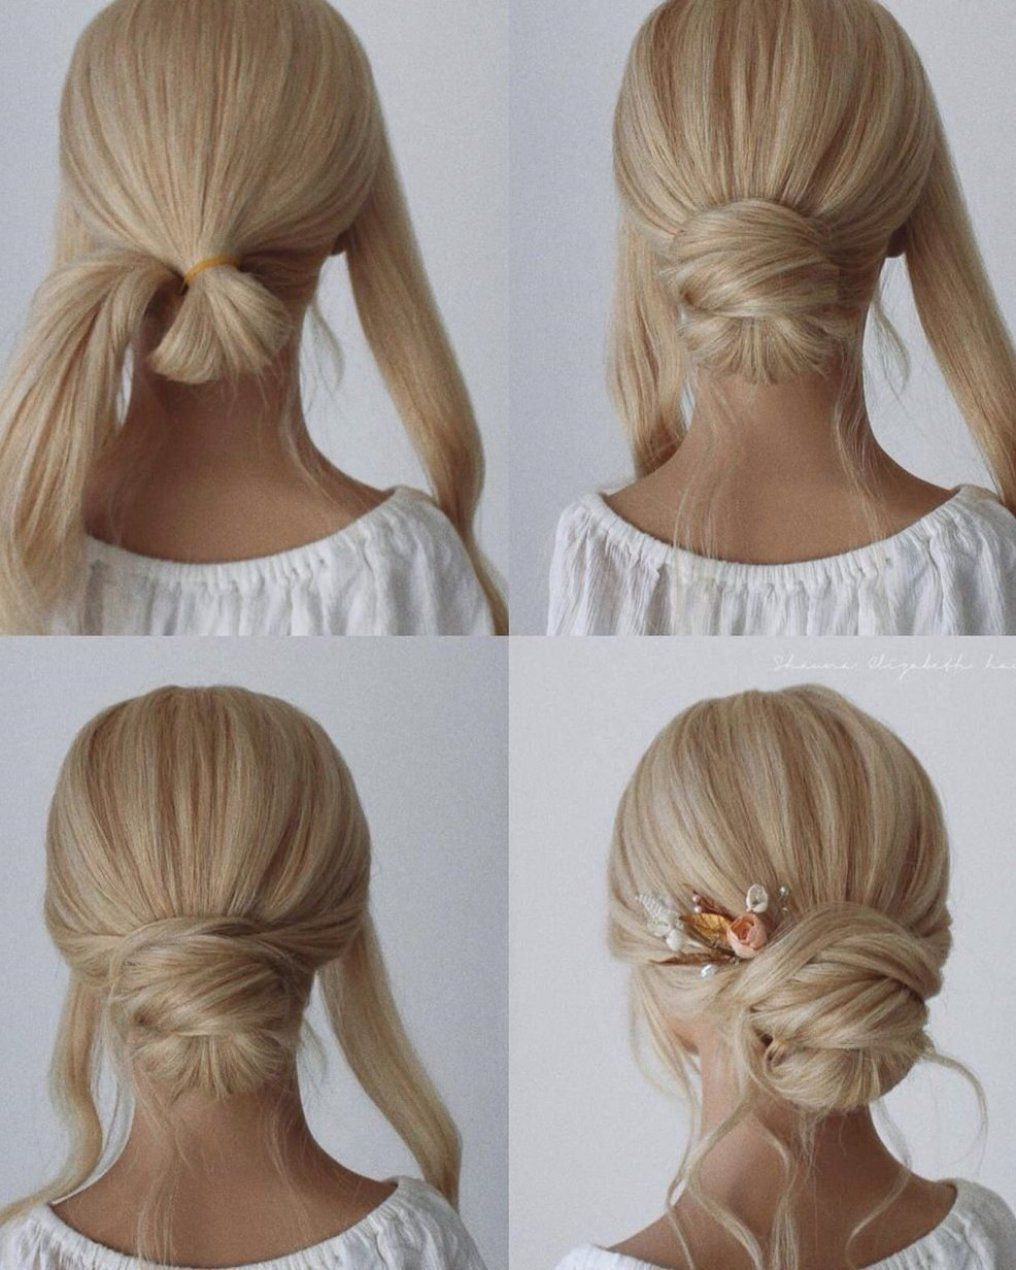 Hairstyle Ideas For Grade 8 Grad Hairstyle Ideas With Clips Hairstyle Ideas Medium Length Easy Hairstyle For Ideas In 2020 Grad Hairstyles Hair Tutorial Hair Styles